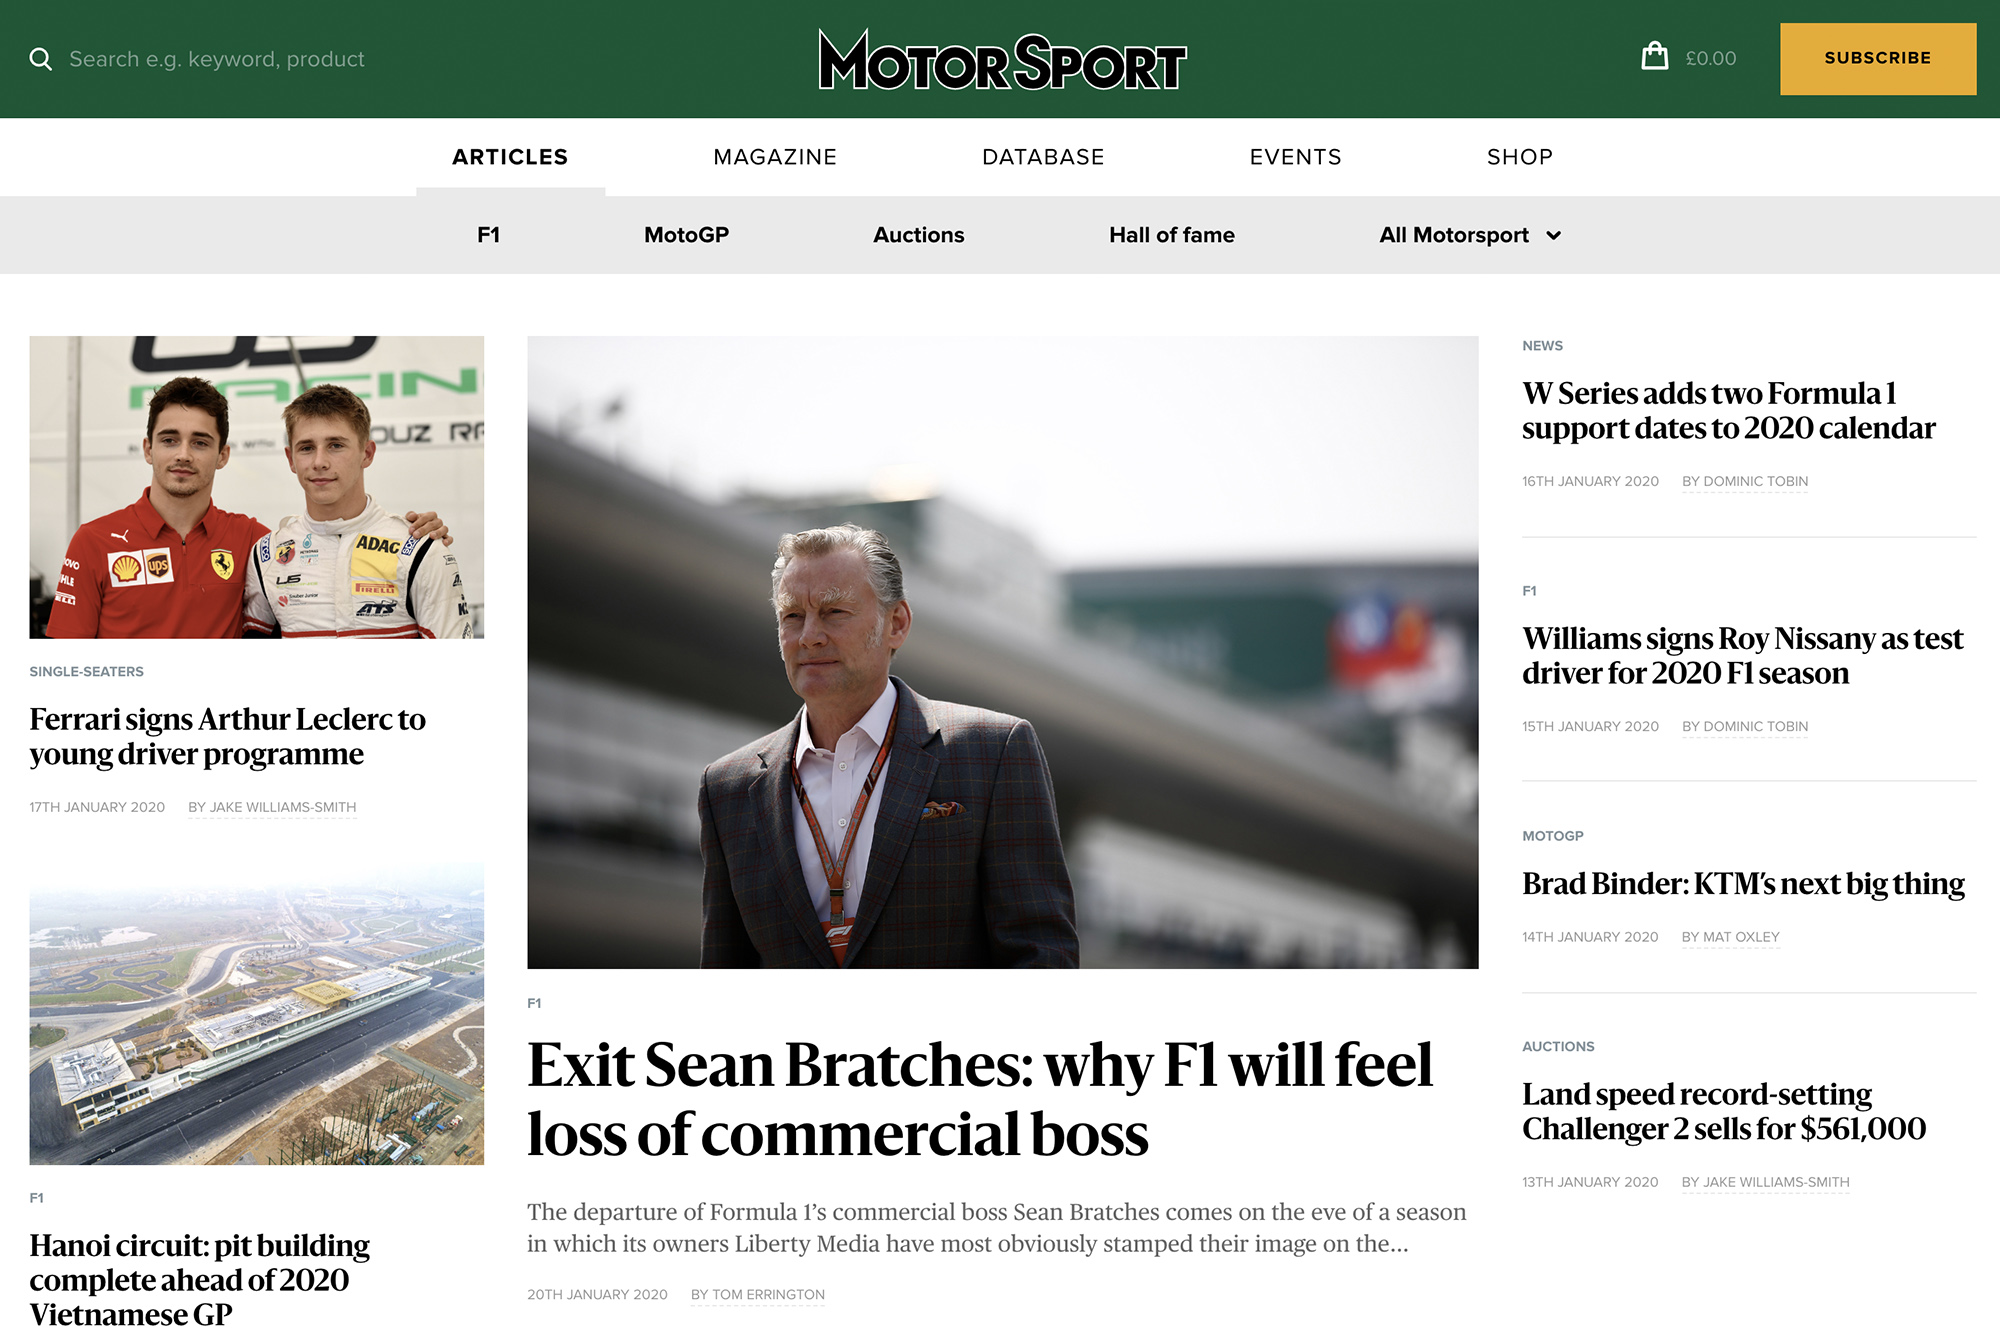 Welcome to the new Motor Sport website